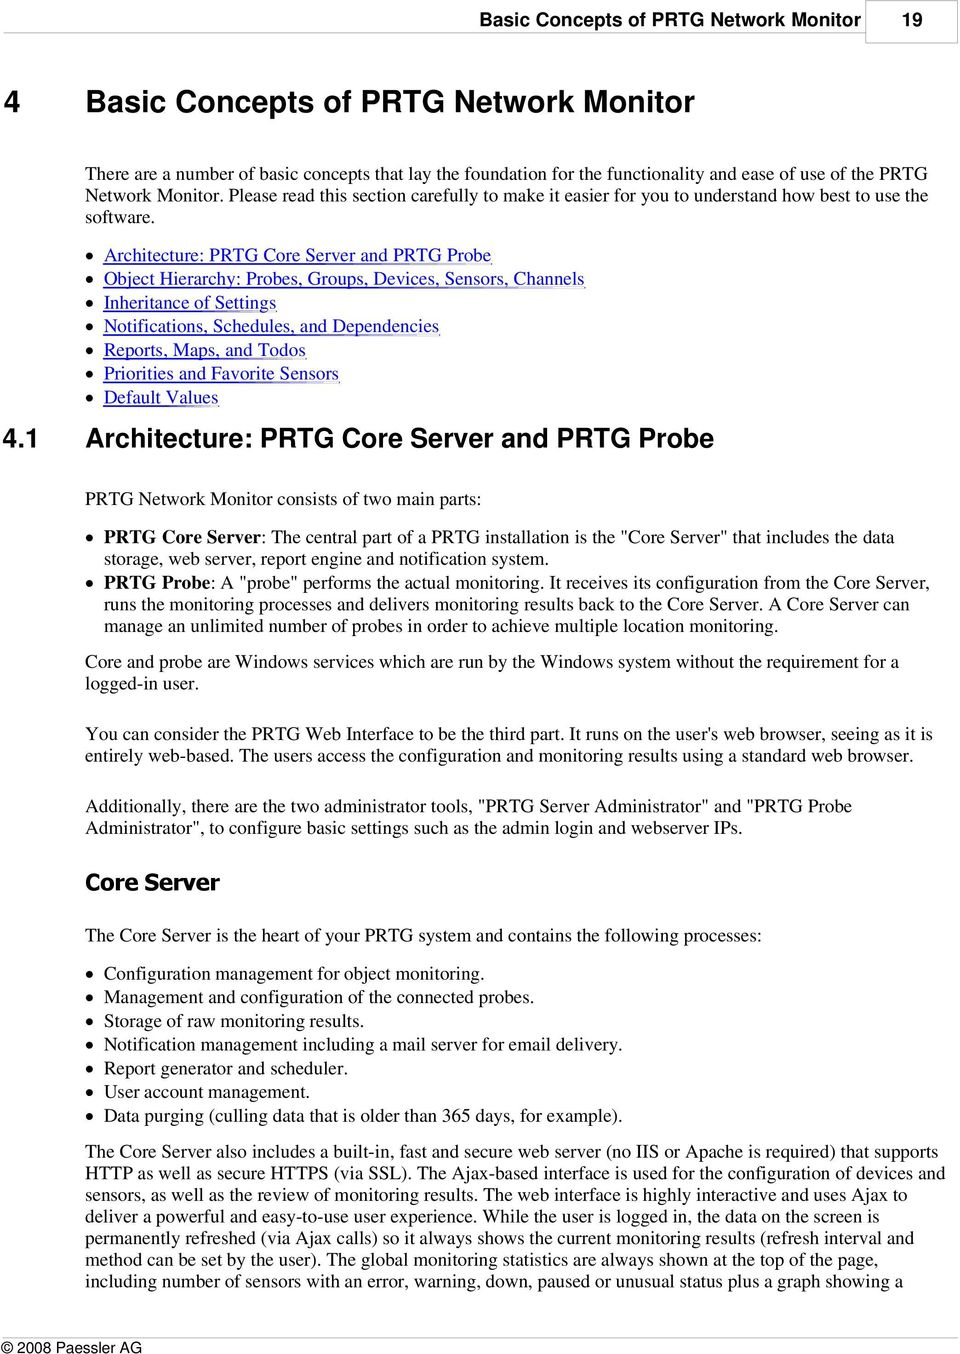 1 Architecture: PRTG Core Server and PRTG Probe Object Hierarchy: Probes, Groups, Devices, Sensors, Channels Inheritance of Settings Notifications, Schedules, and Dependencies Reports, Maps, and